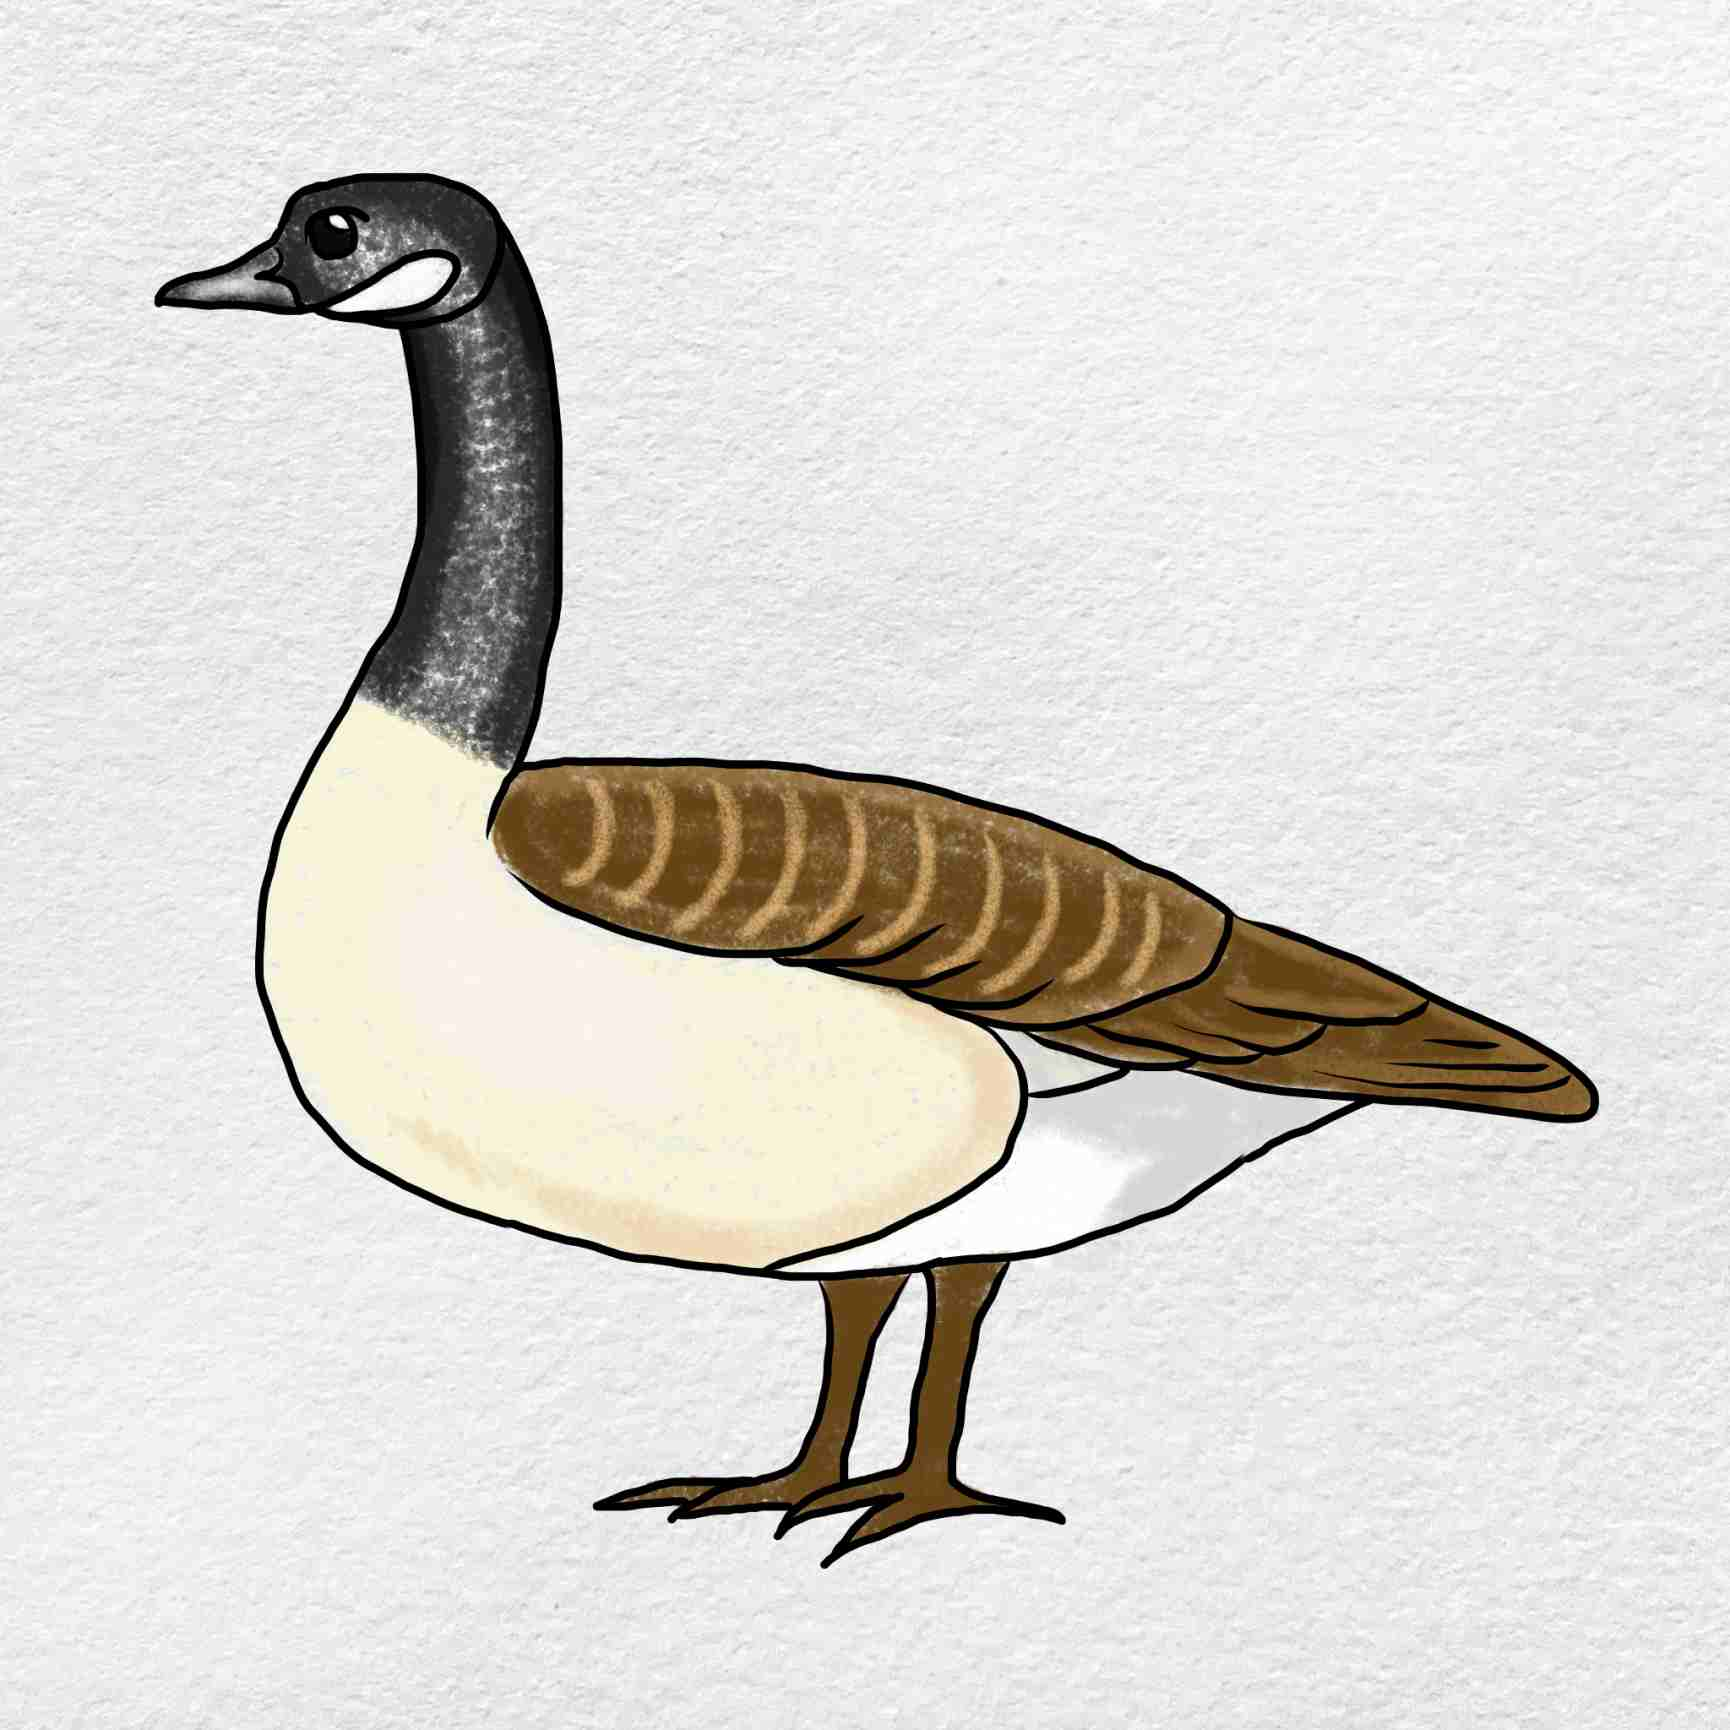 Canada Goose Drawing: Step 6